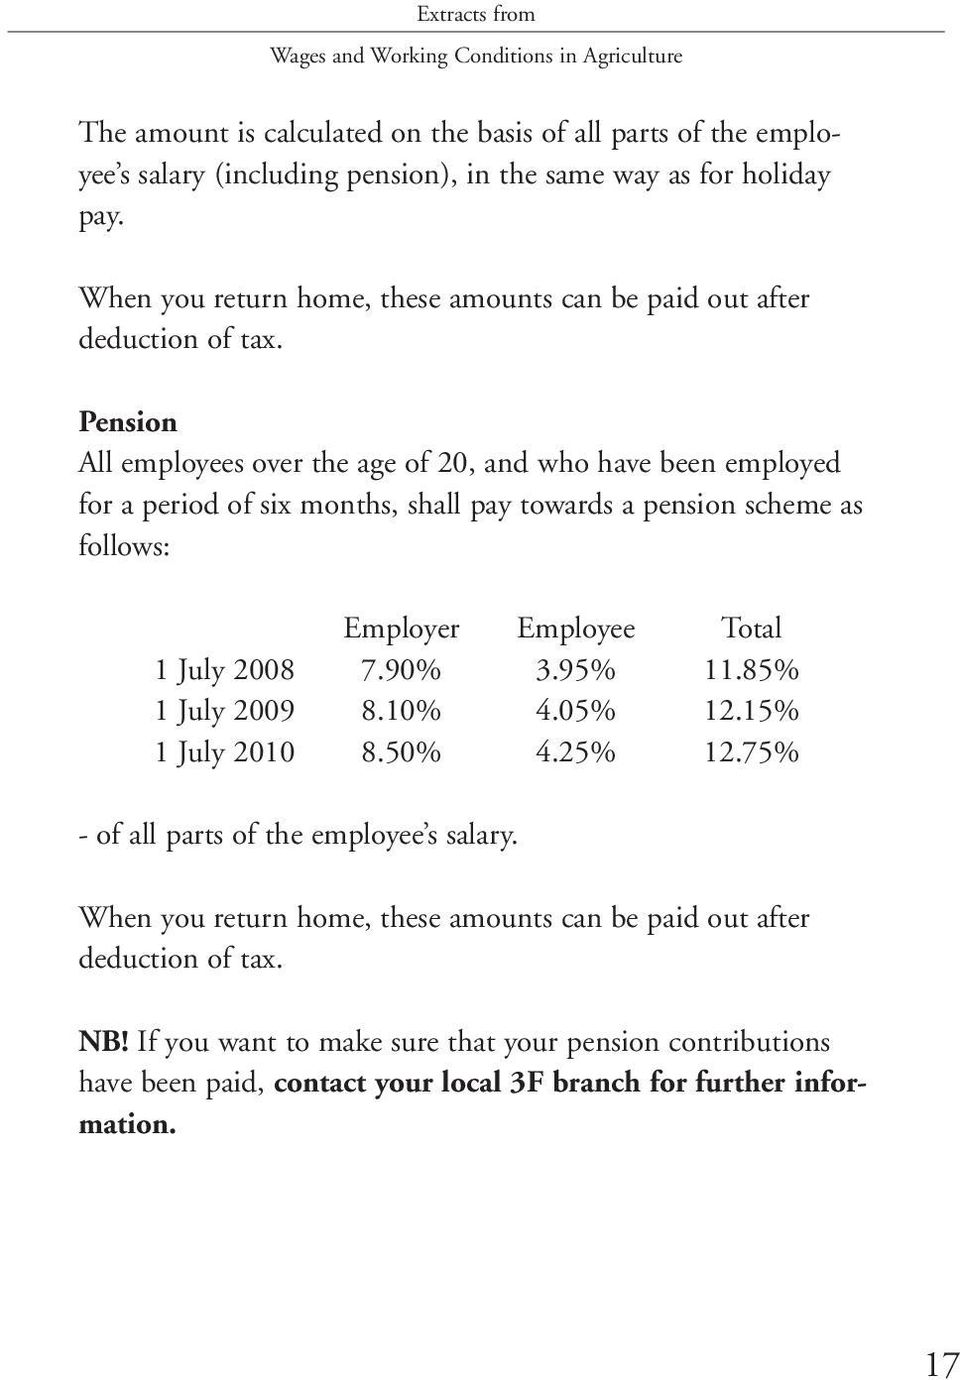 Pension All employees over the age of 20, and who have been employed for a period of six months, shall pay towards a pension scheme as follows: Employer Employee Total 1 July 2008 7.90% 3.95% 11.